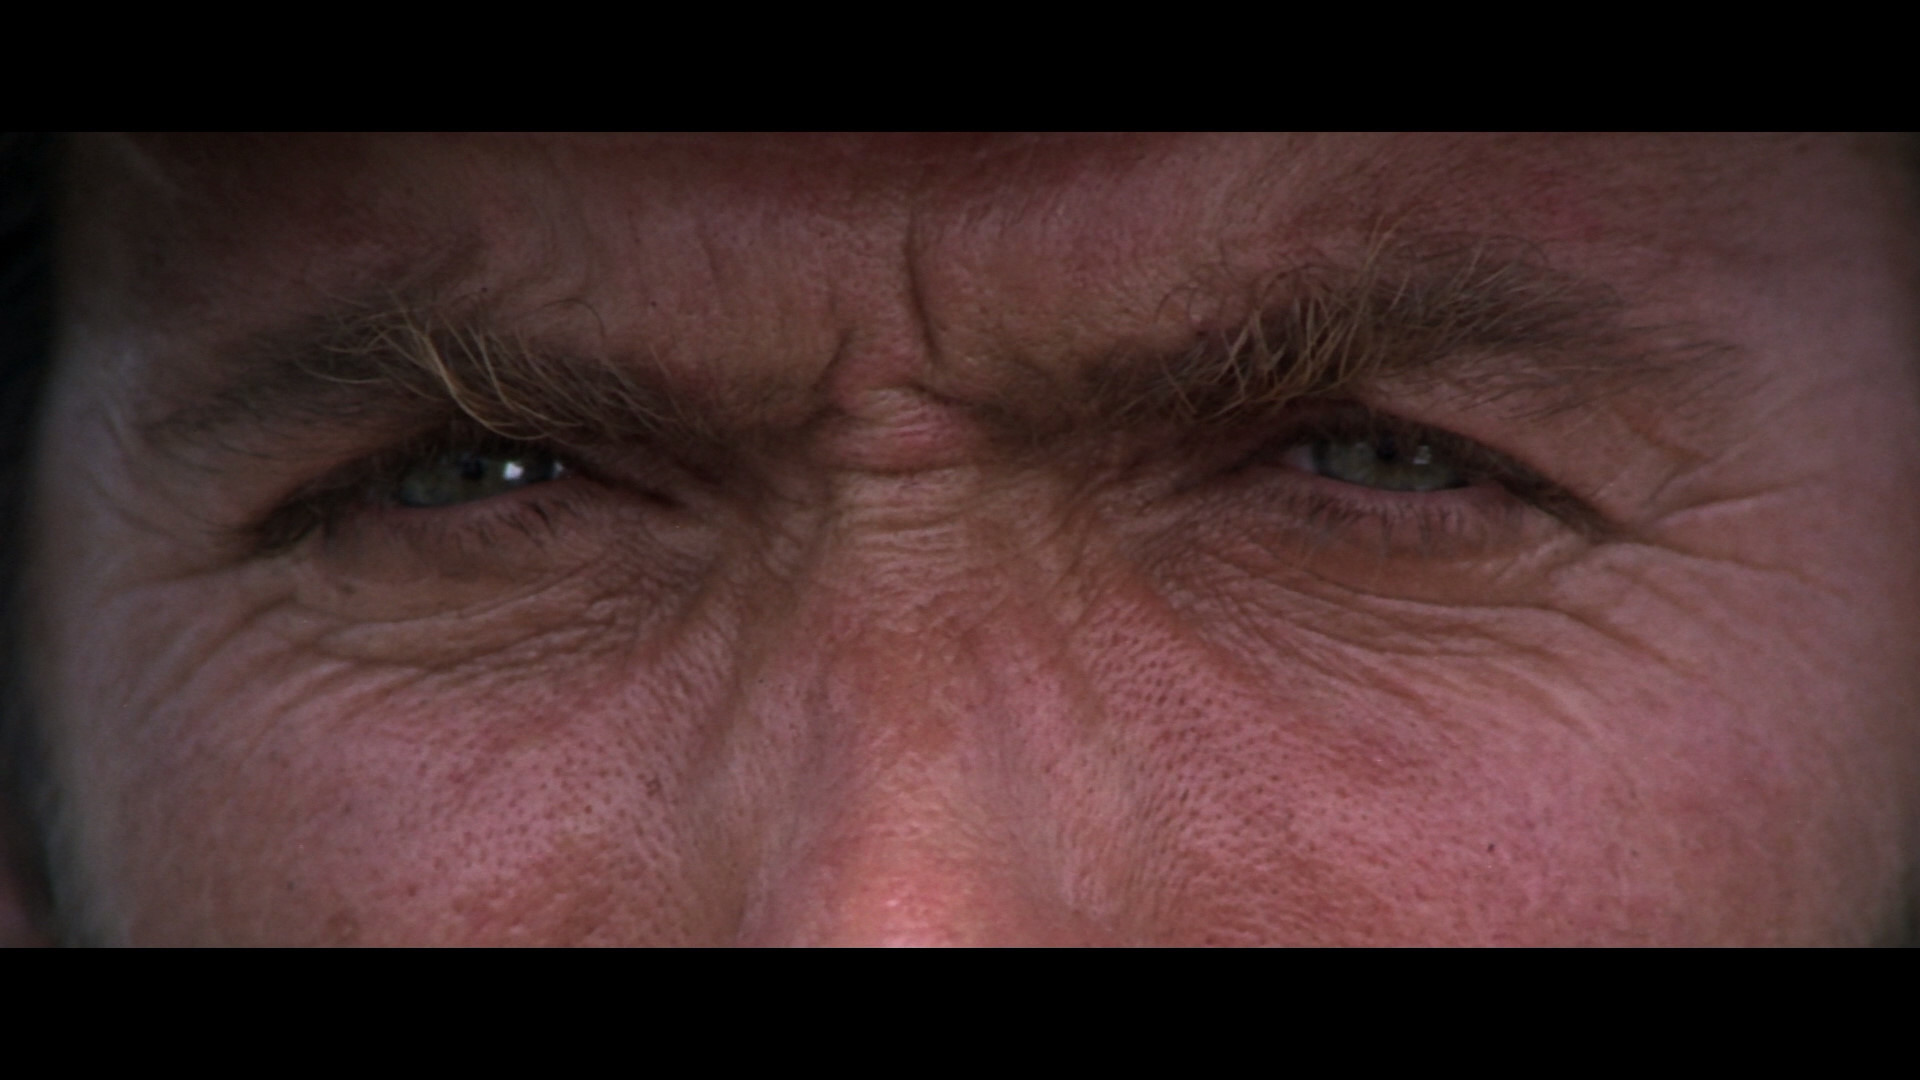 eyes clint eastwood The HD Wallpaper